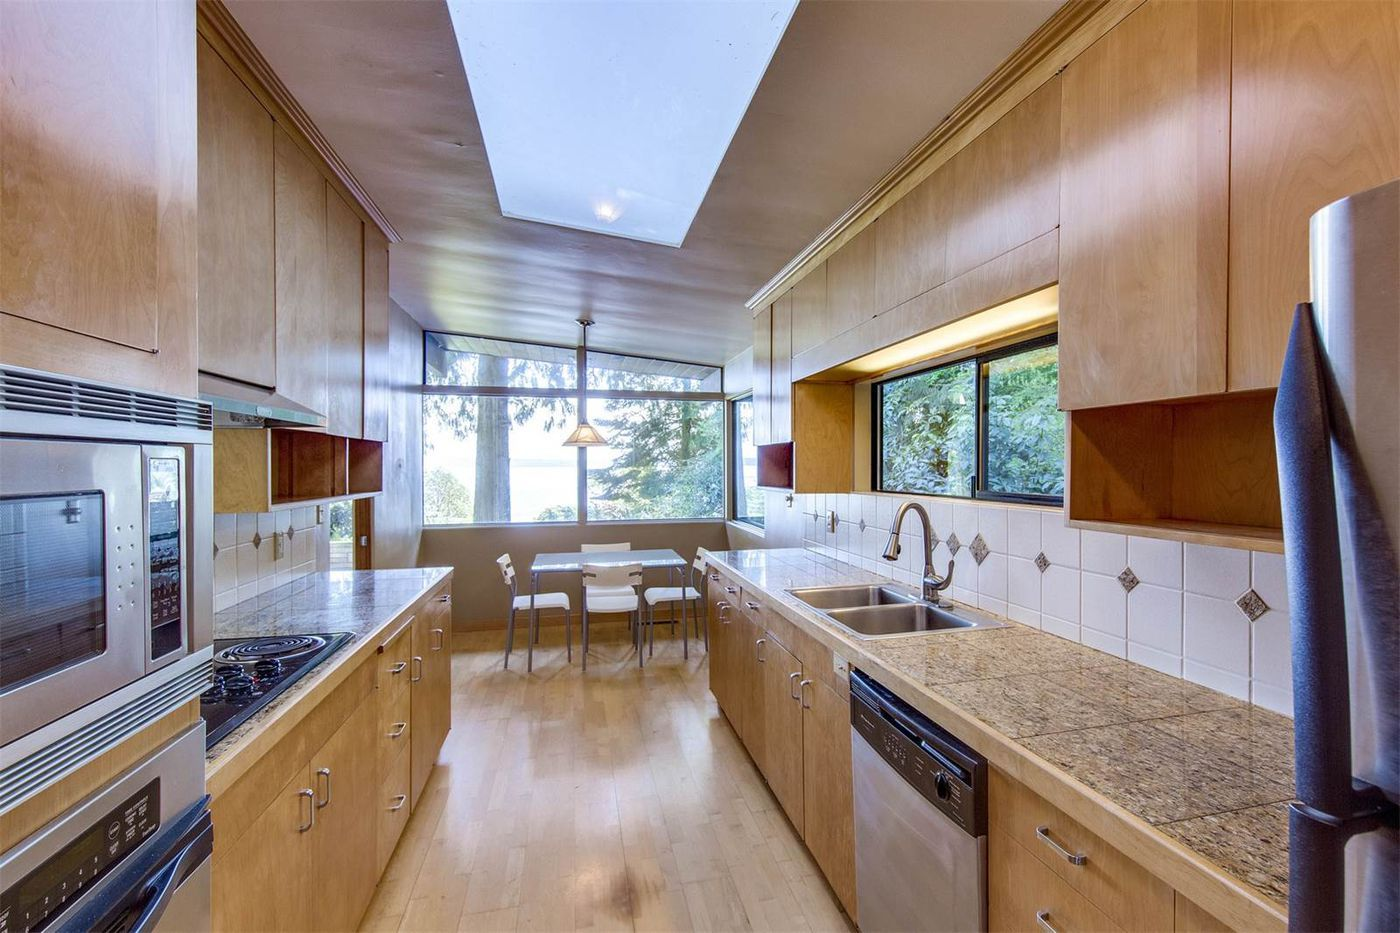 Beachfront midcentury home with views asks 1.2M